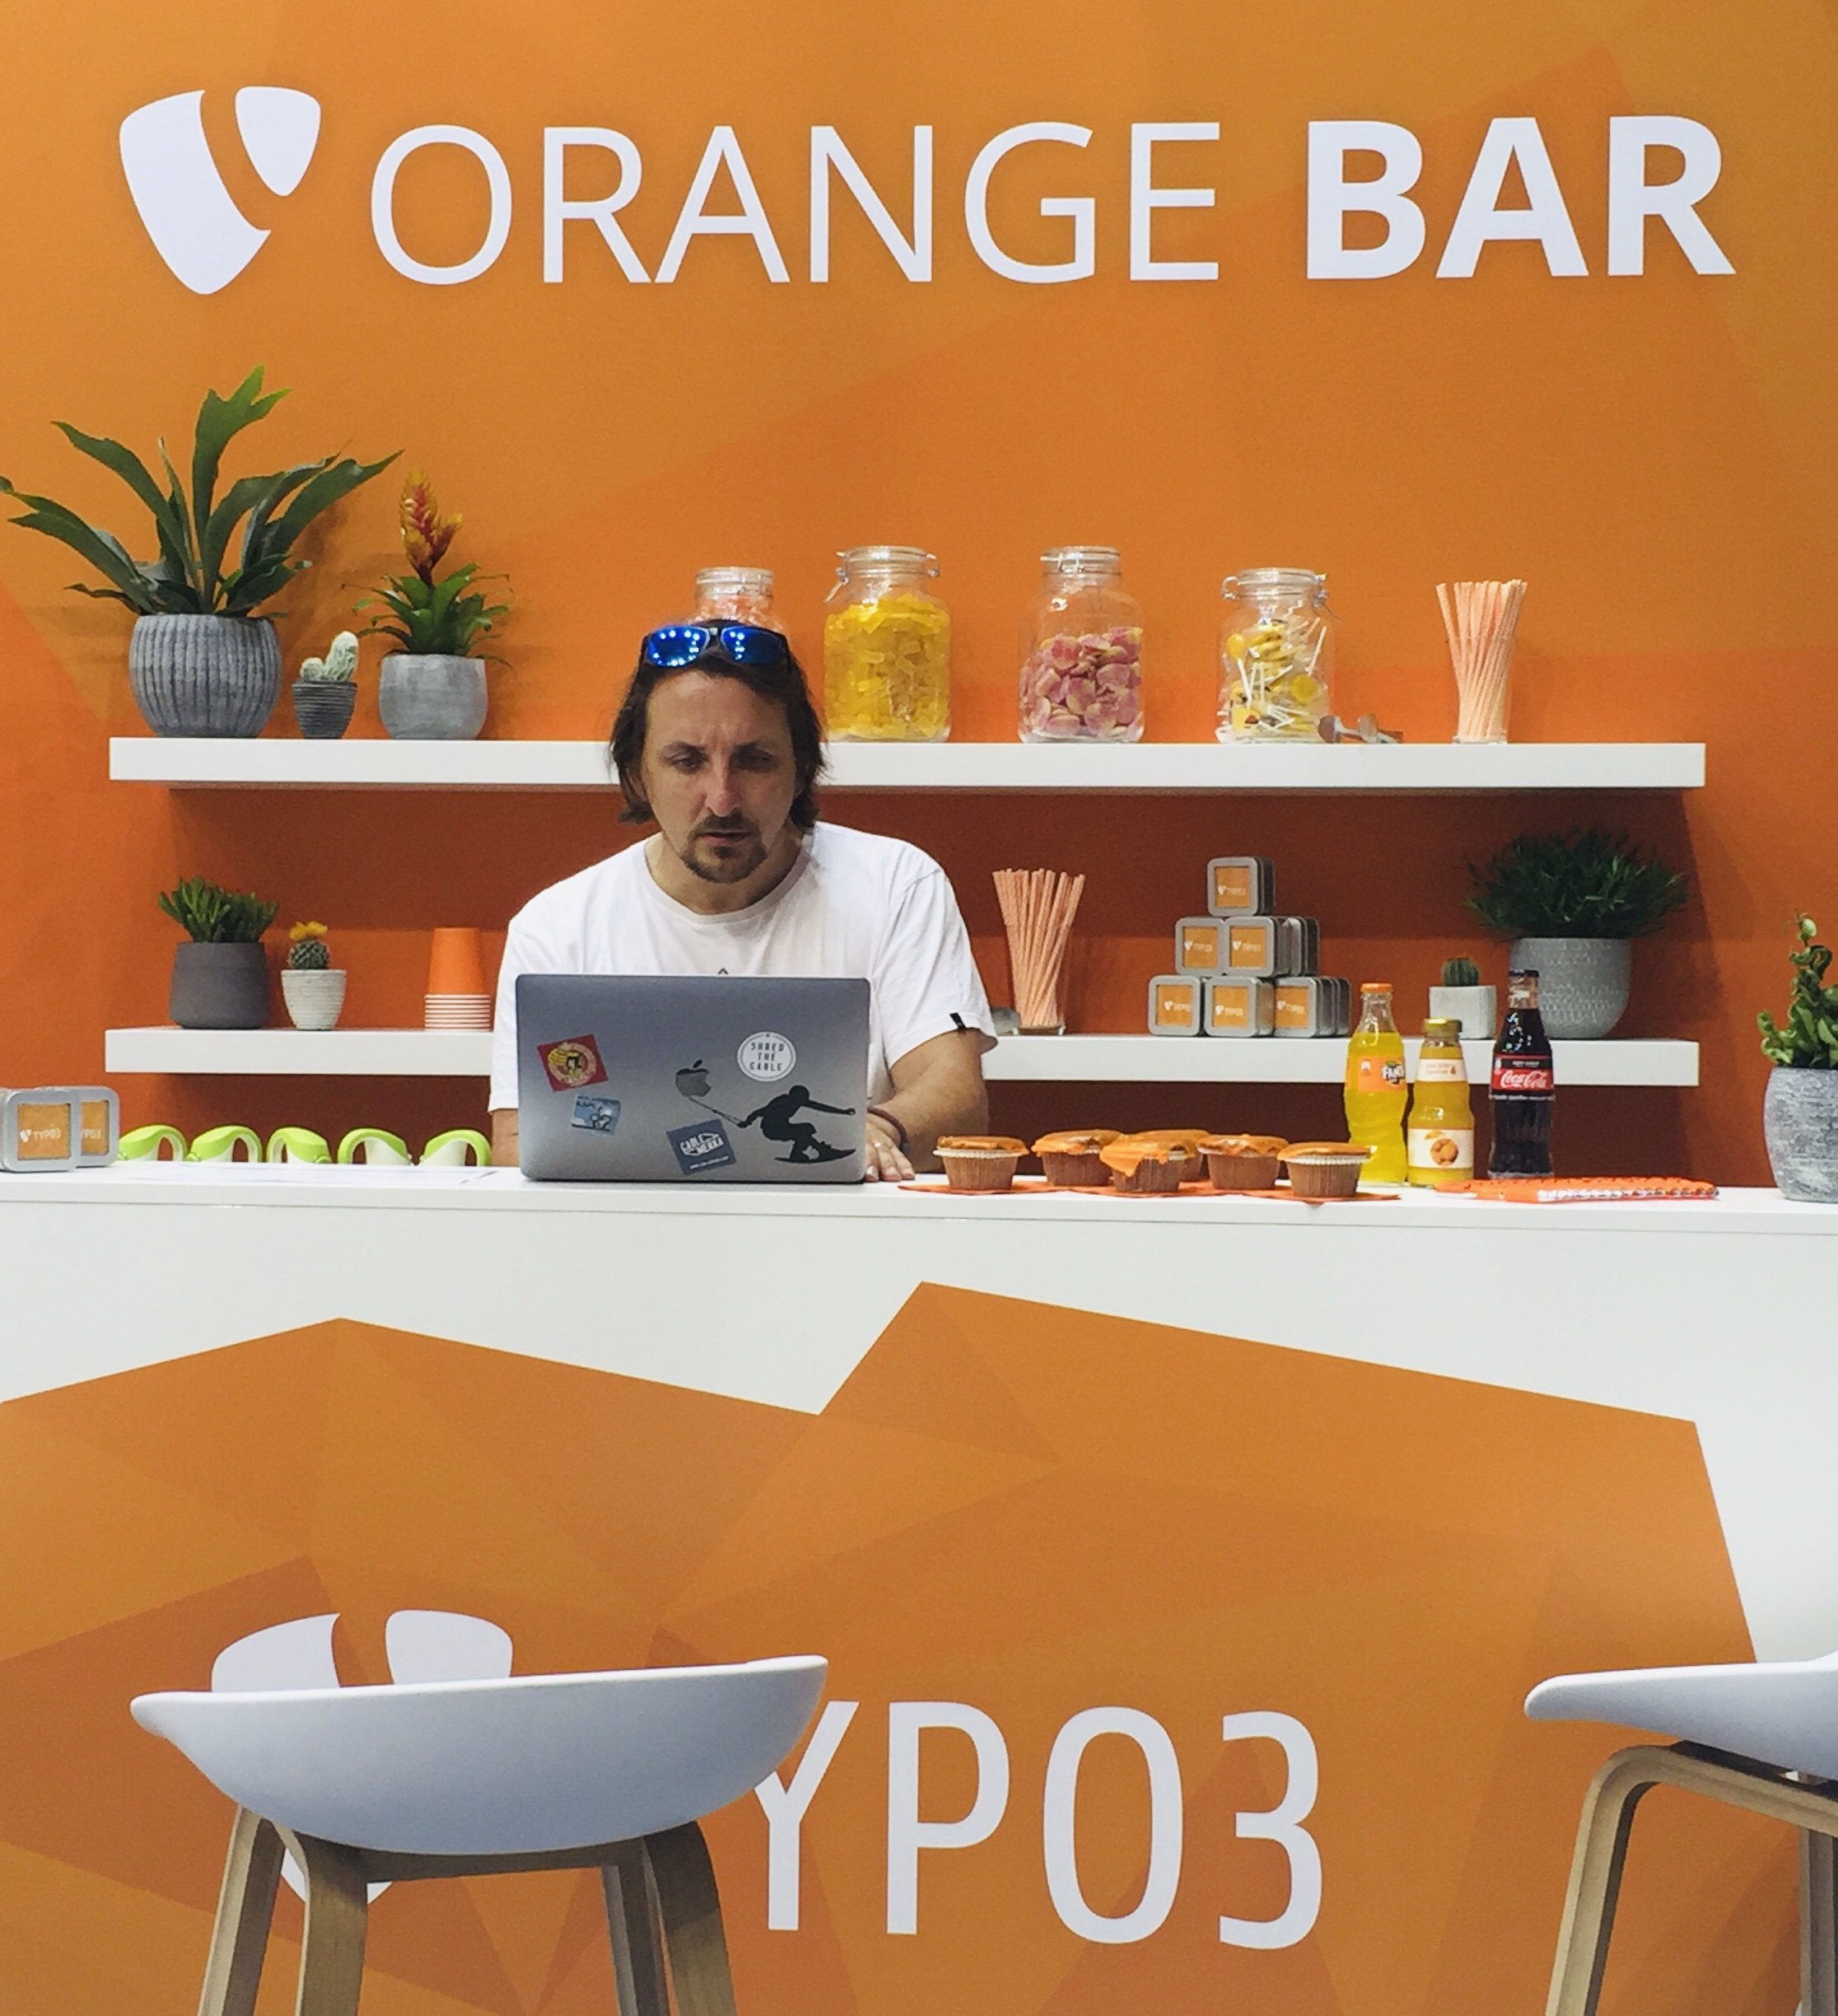 TYPO3 Orange Bar